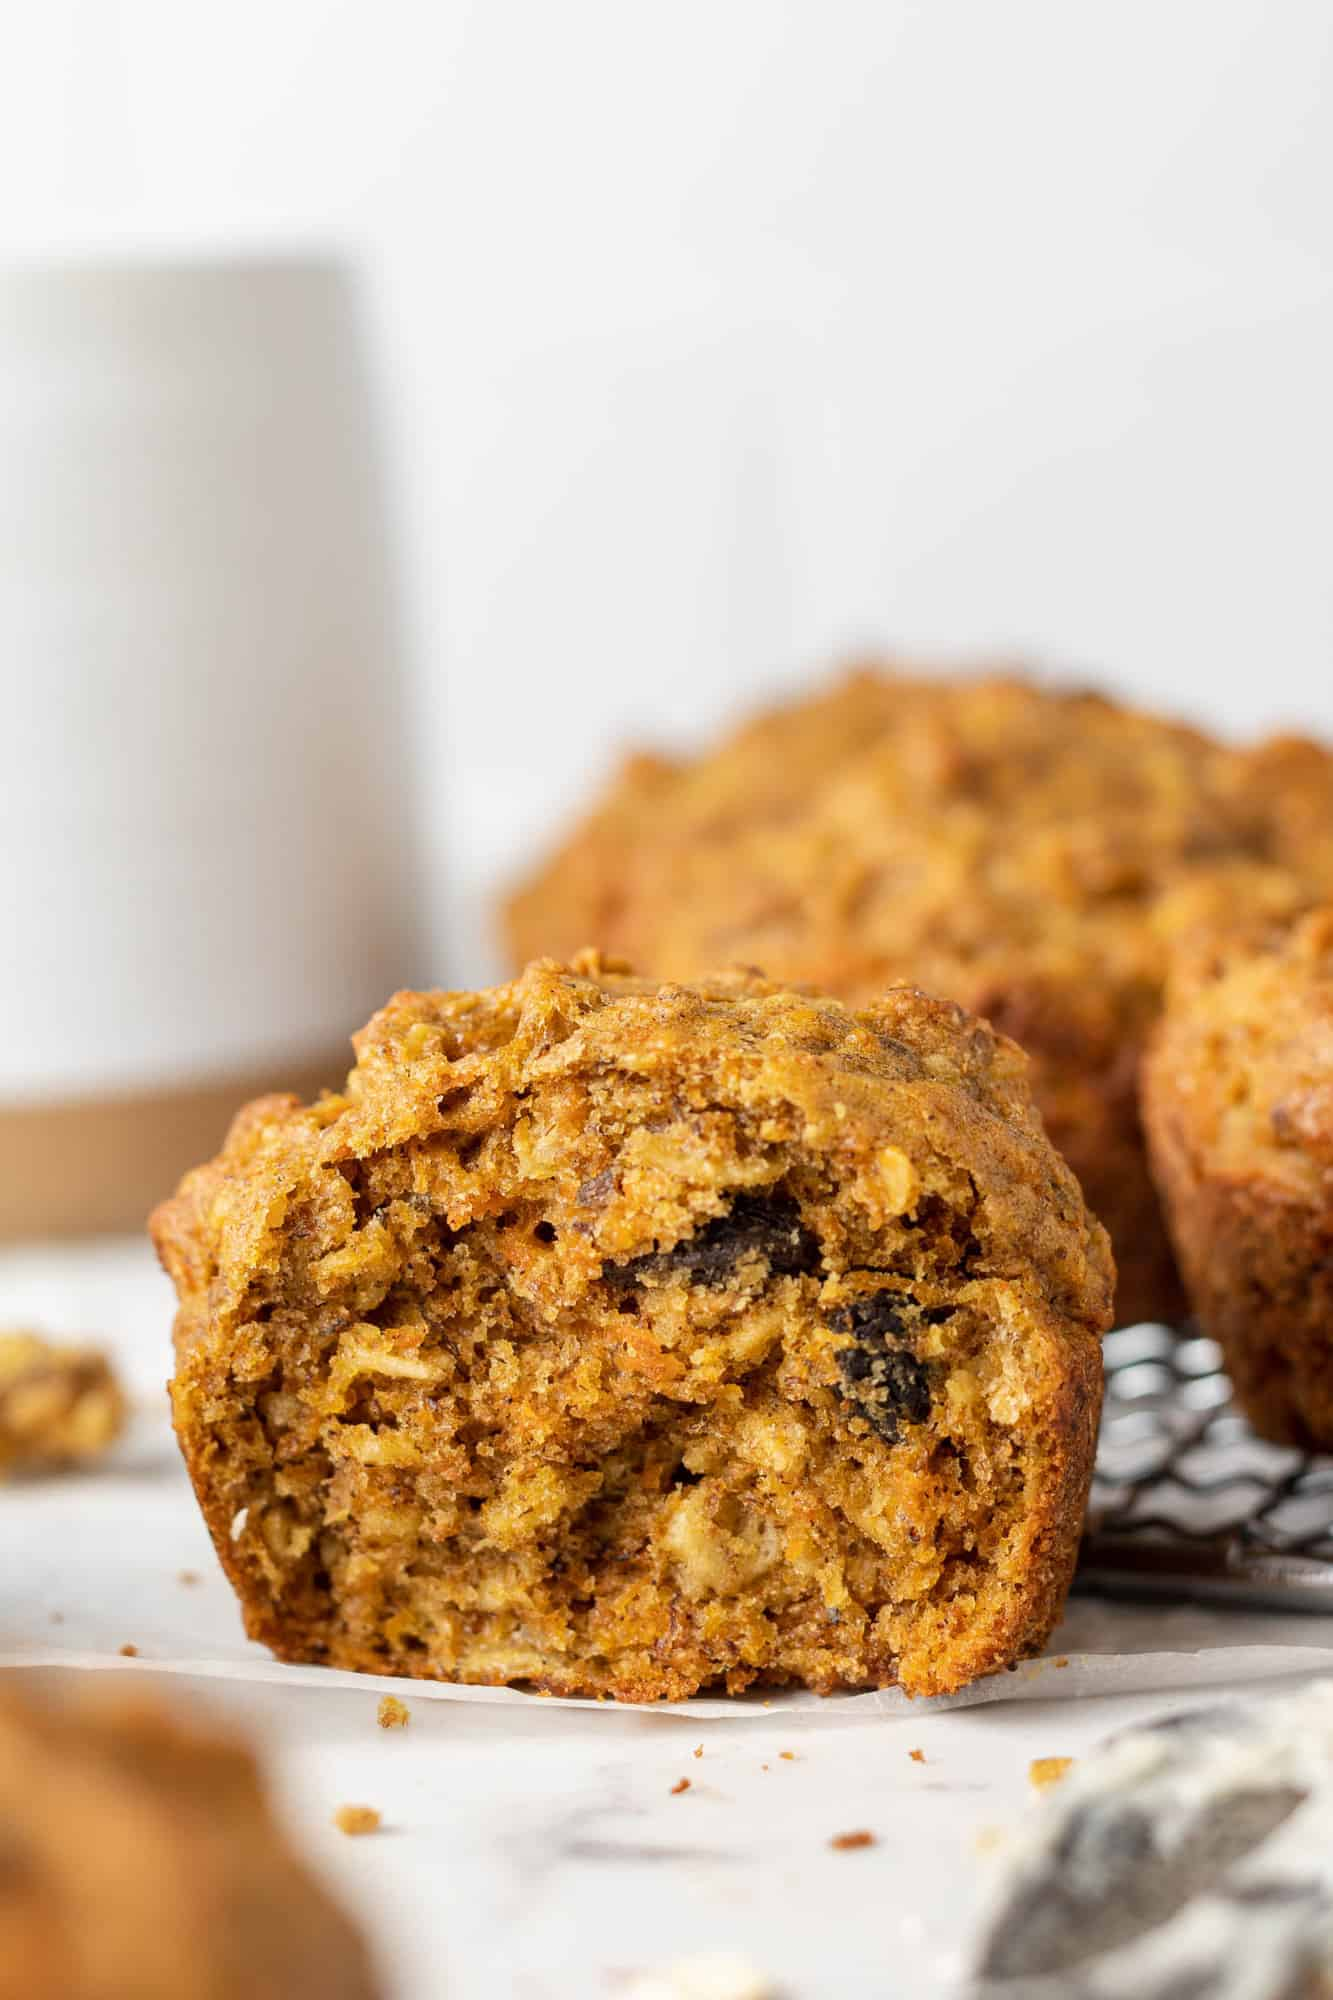 Muffin torn in half to show interior: carrots, oats, and raisins are visible.